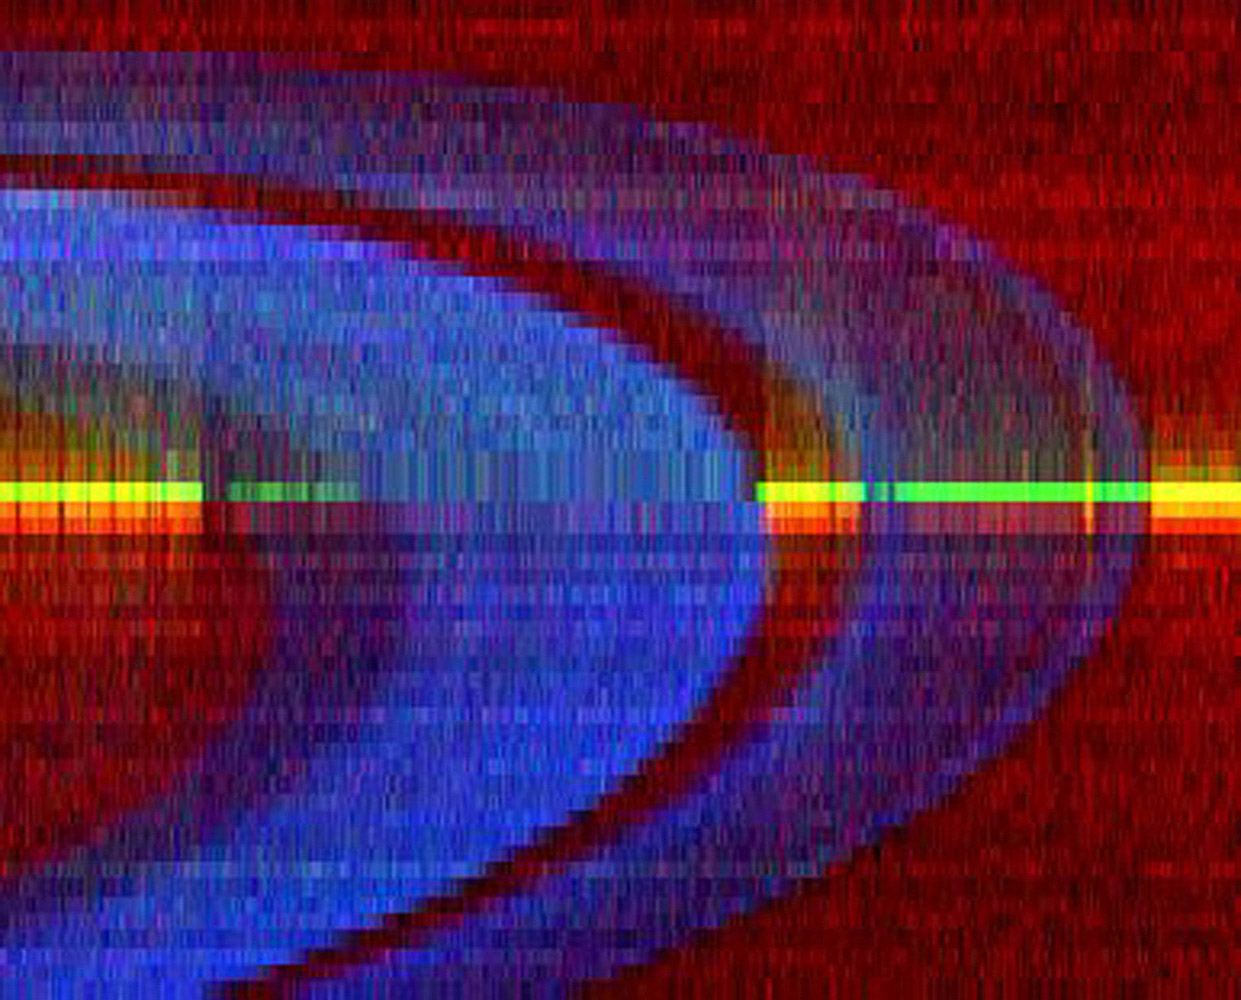 This image is a false-color ultraviolet view of Saturn's B ring and A ring, separated by a large gap known as the Cassini Division. The images were processed from data taken by the ultraviolet imaging spectrograph aboard NASA's Cassini spacecraft.